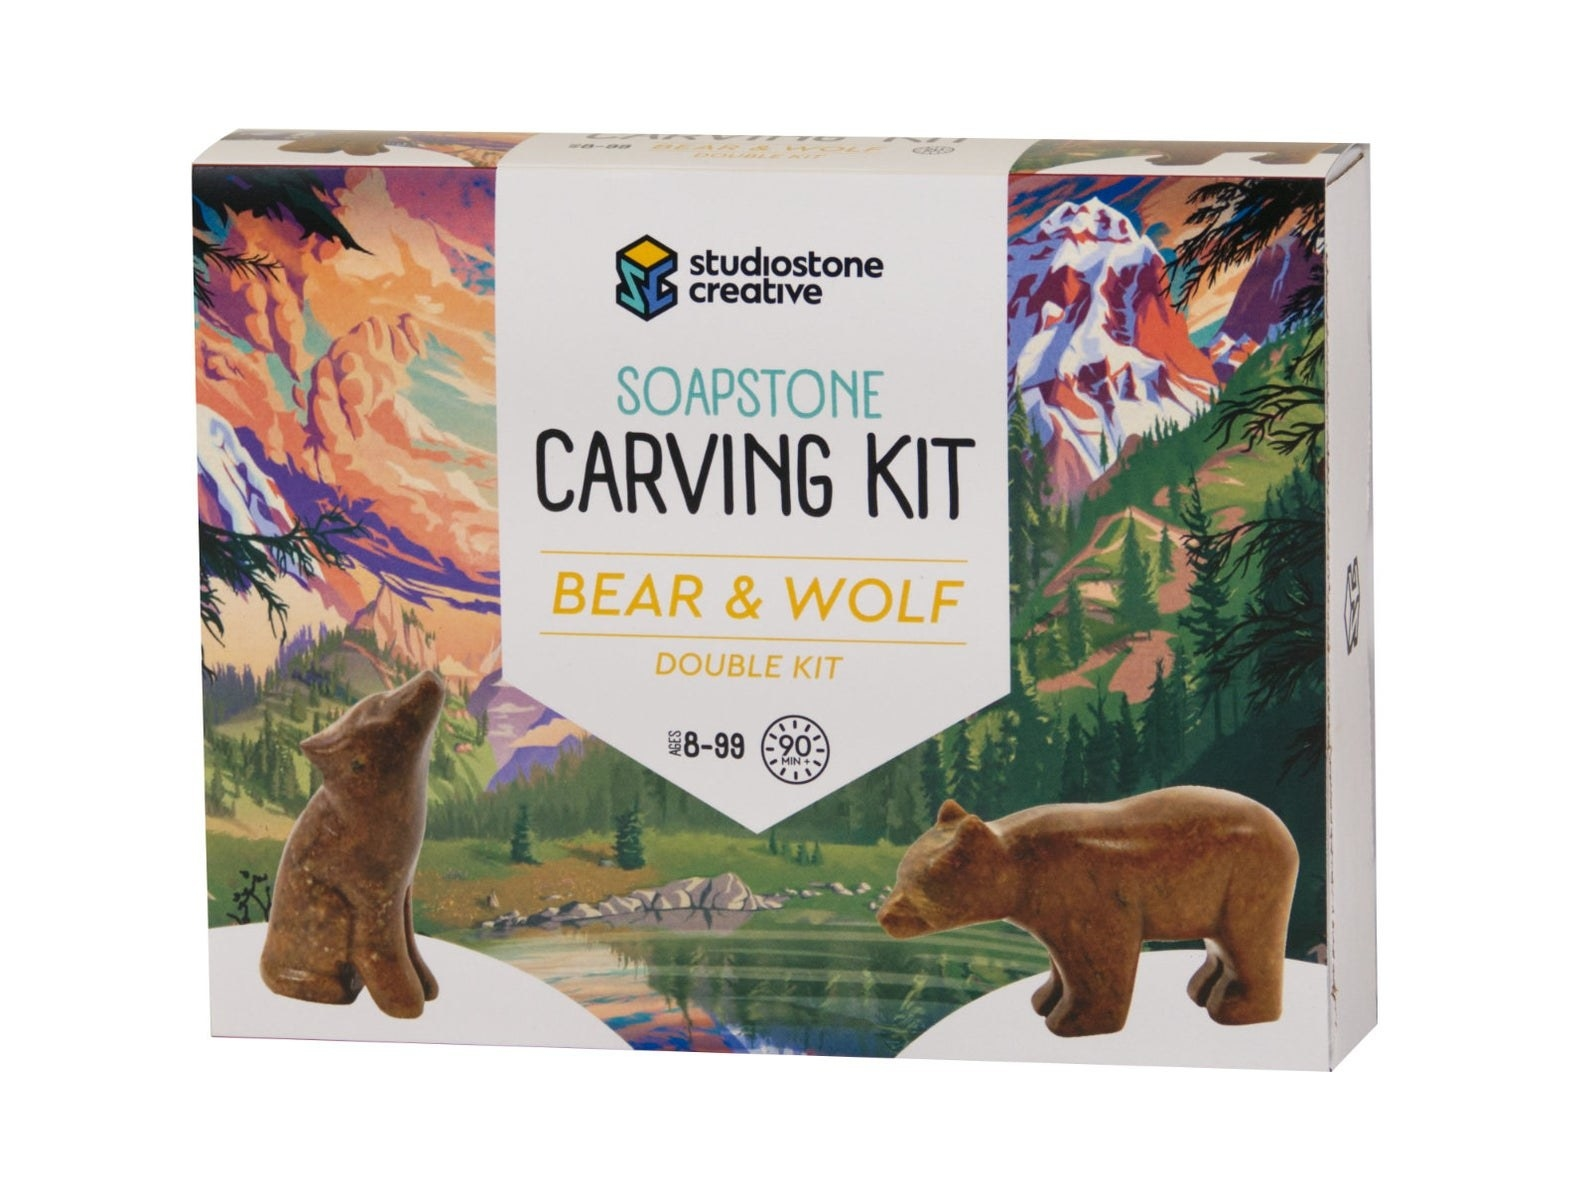 Packaging showing the carving kit meant to help you create a wooden bear and wolf